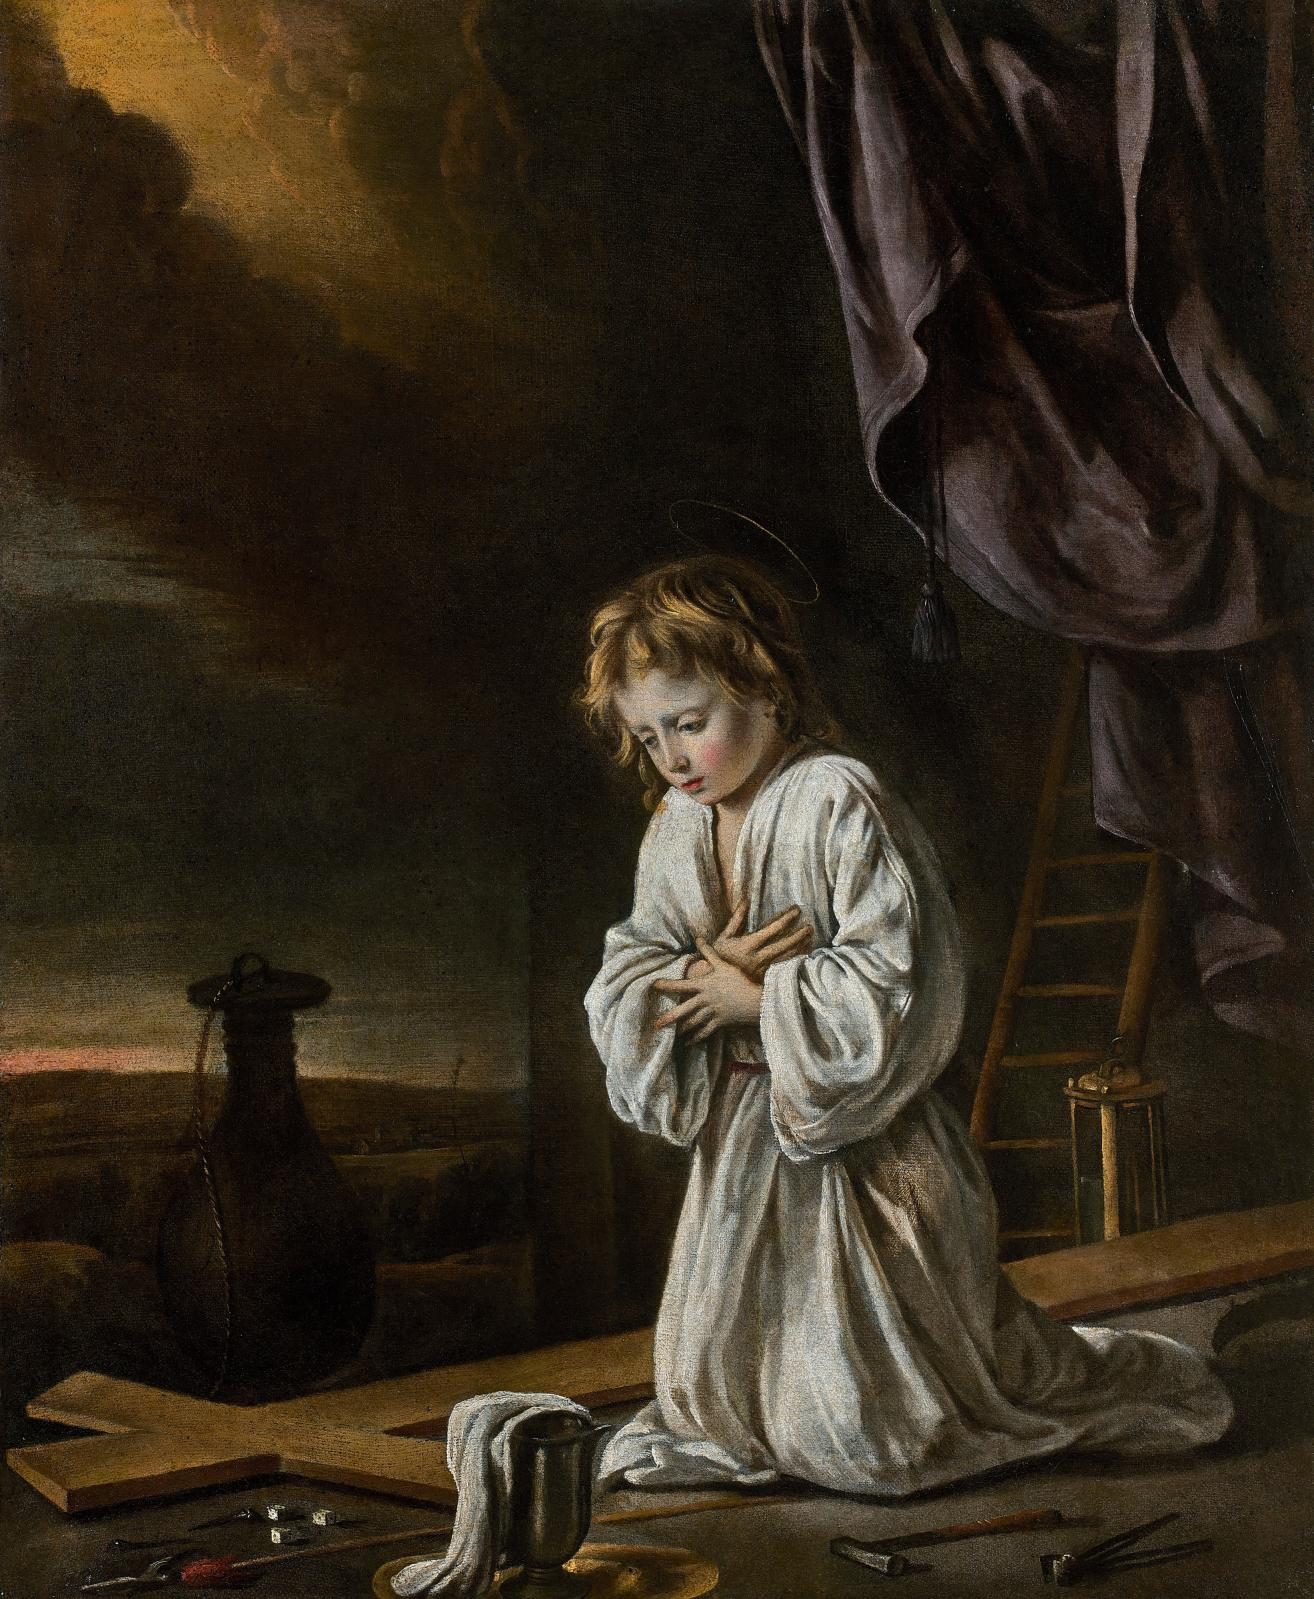 €3,596,000 Le Nain brothers, «Jésus enfant en adoration de la Croix», oil on canvas, between 1642 and 1648, 72 x 59 cm.